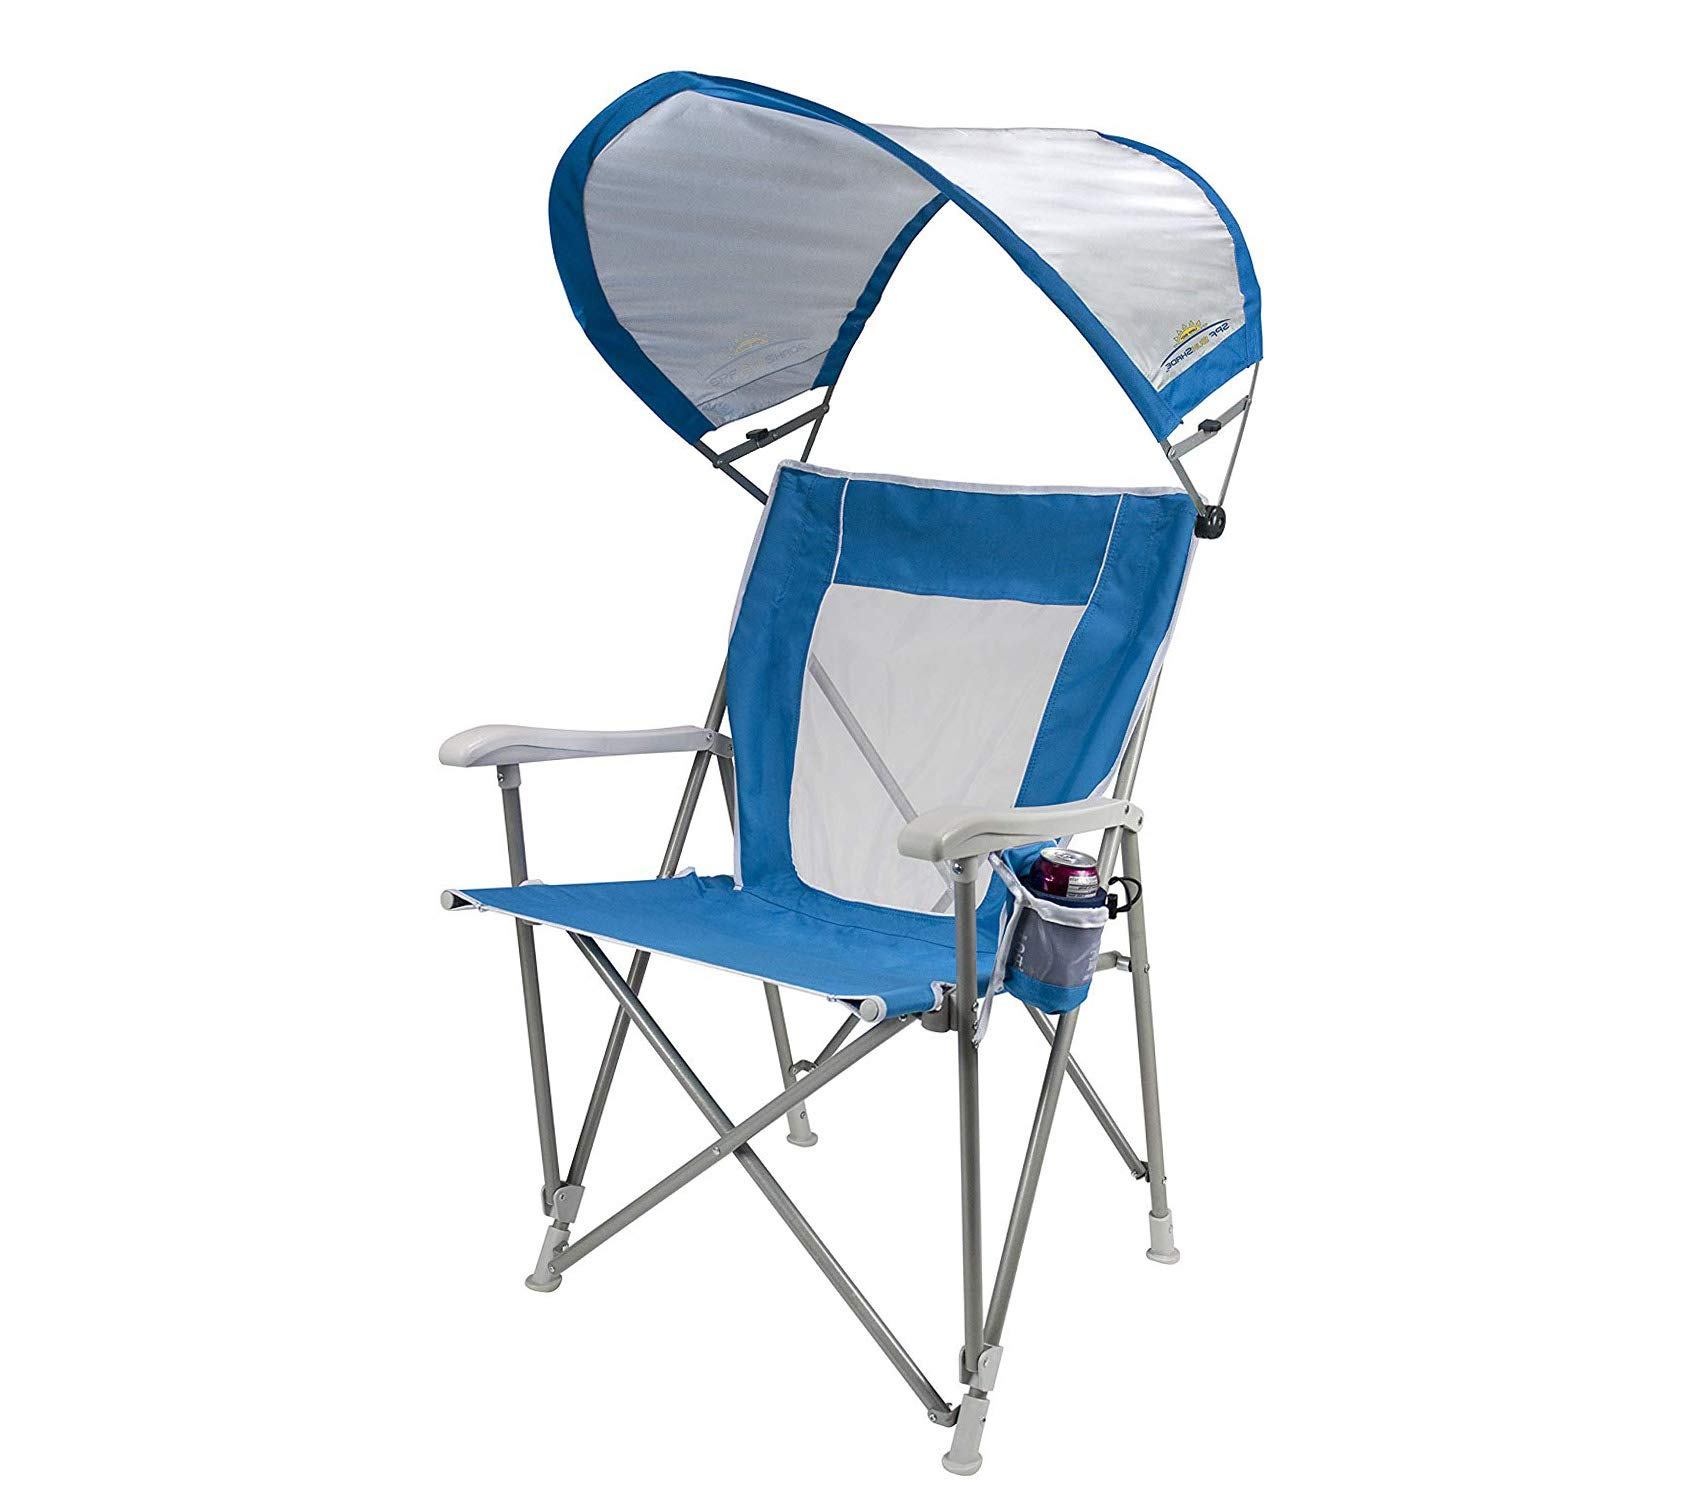 Wood & Style Patio Outdoor Garden Premium Waterside Sunshade Folding Captain's Beach Chair with Adjustable SPF Canopy